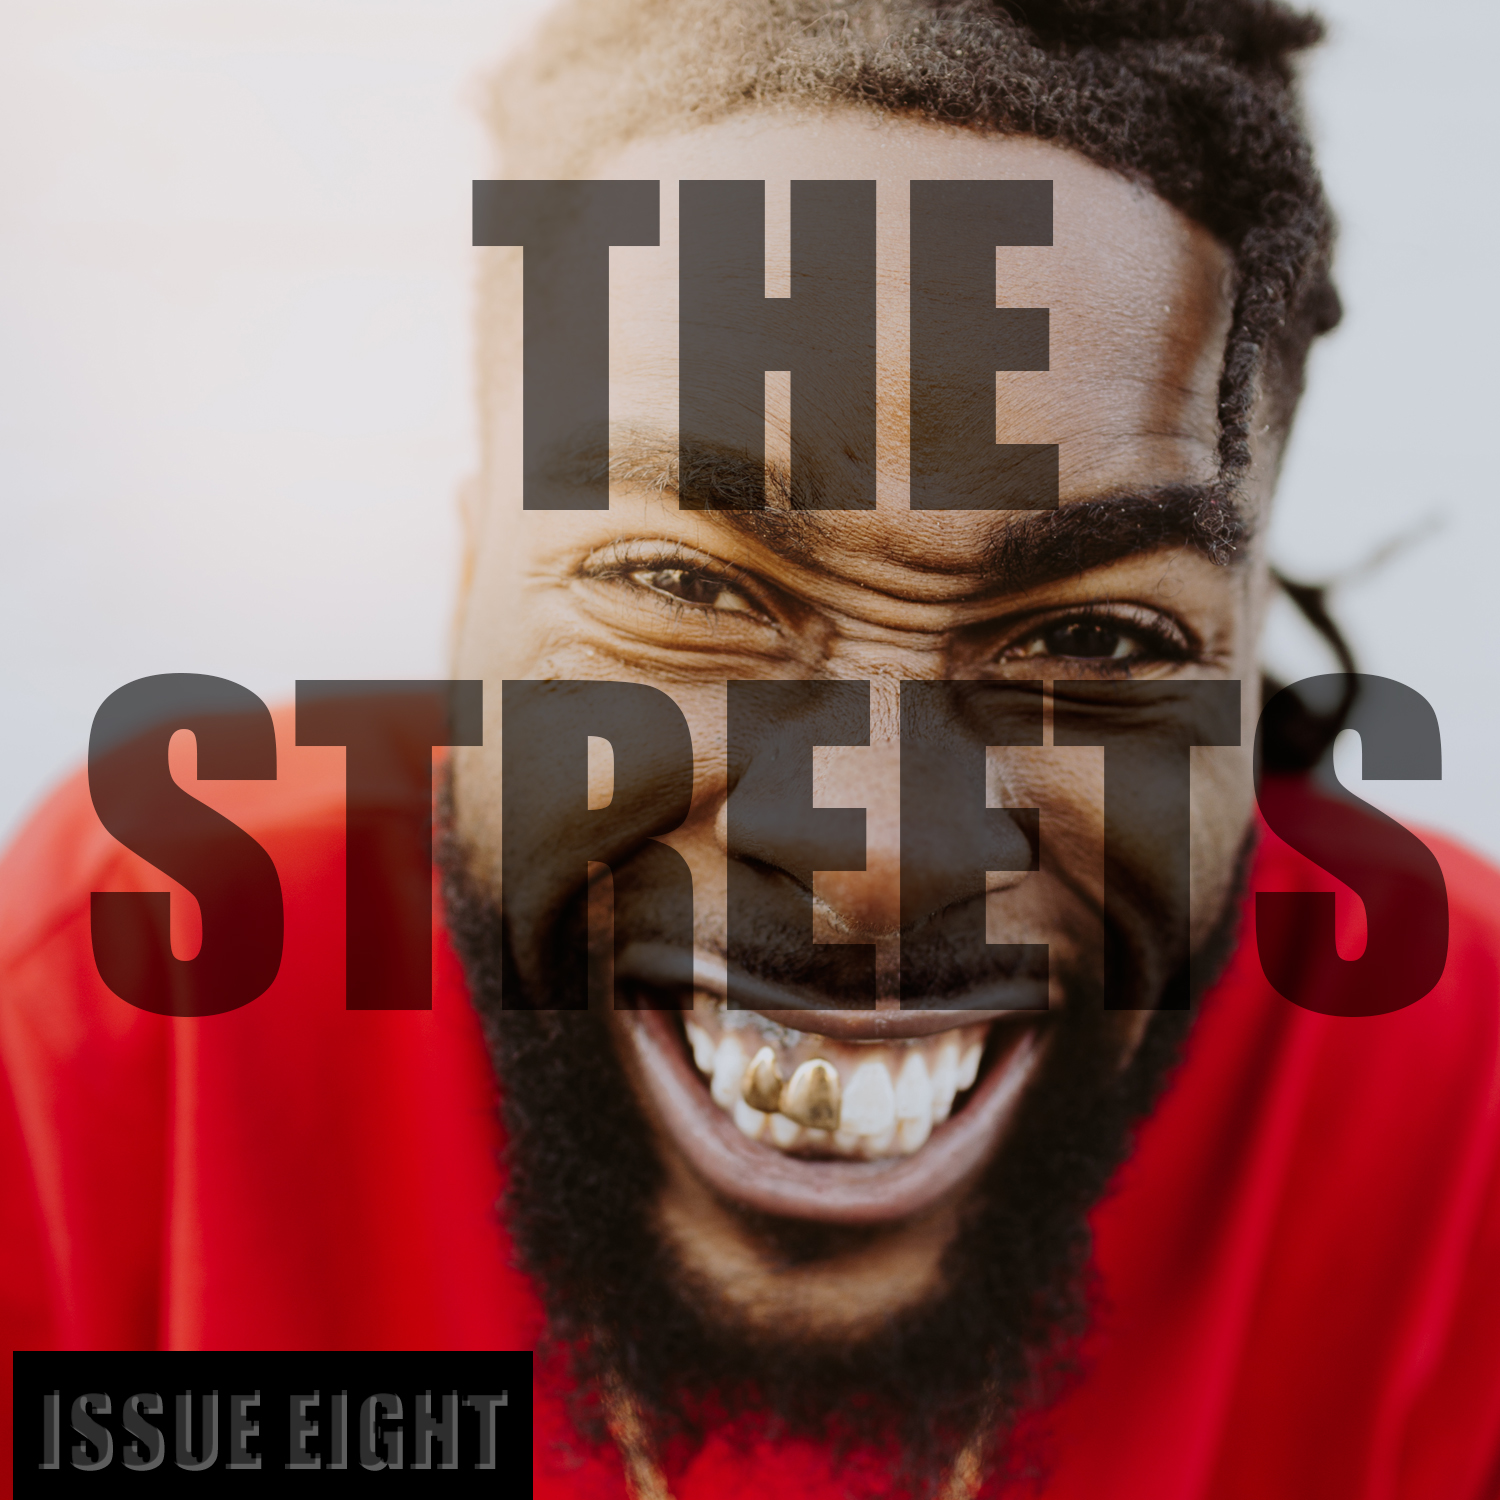 THE STREETS - Issue Eight